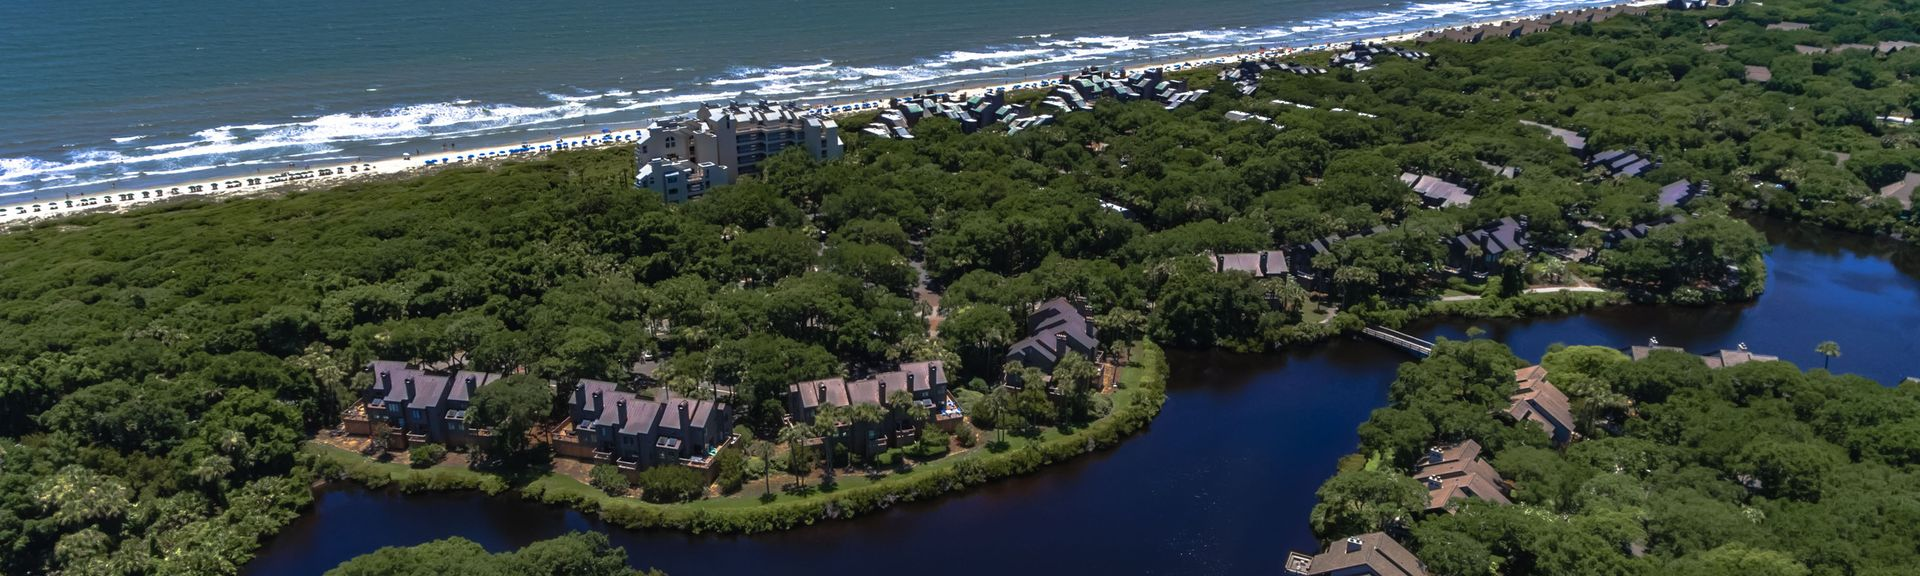 Parkside Villas (Kiawah Island, South Carolina, Verenigde Staten)